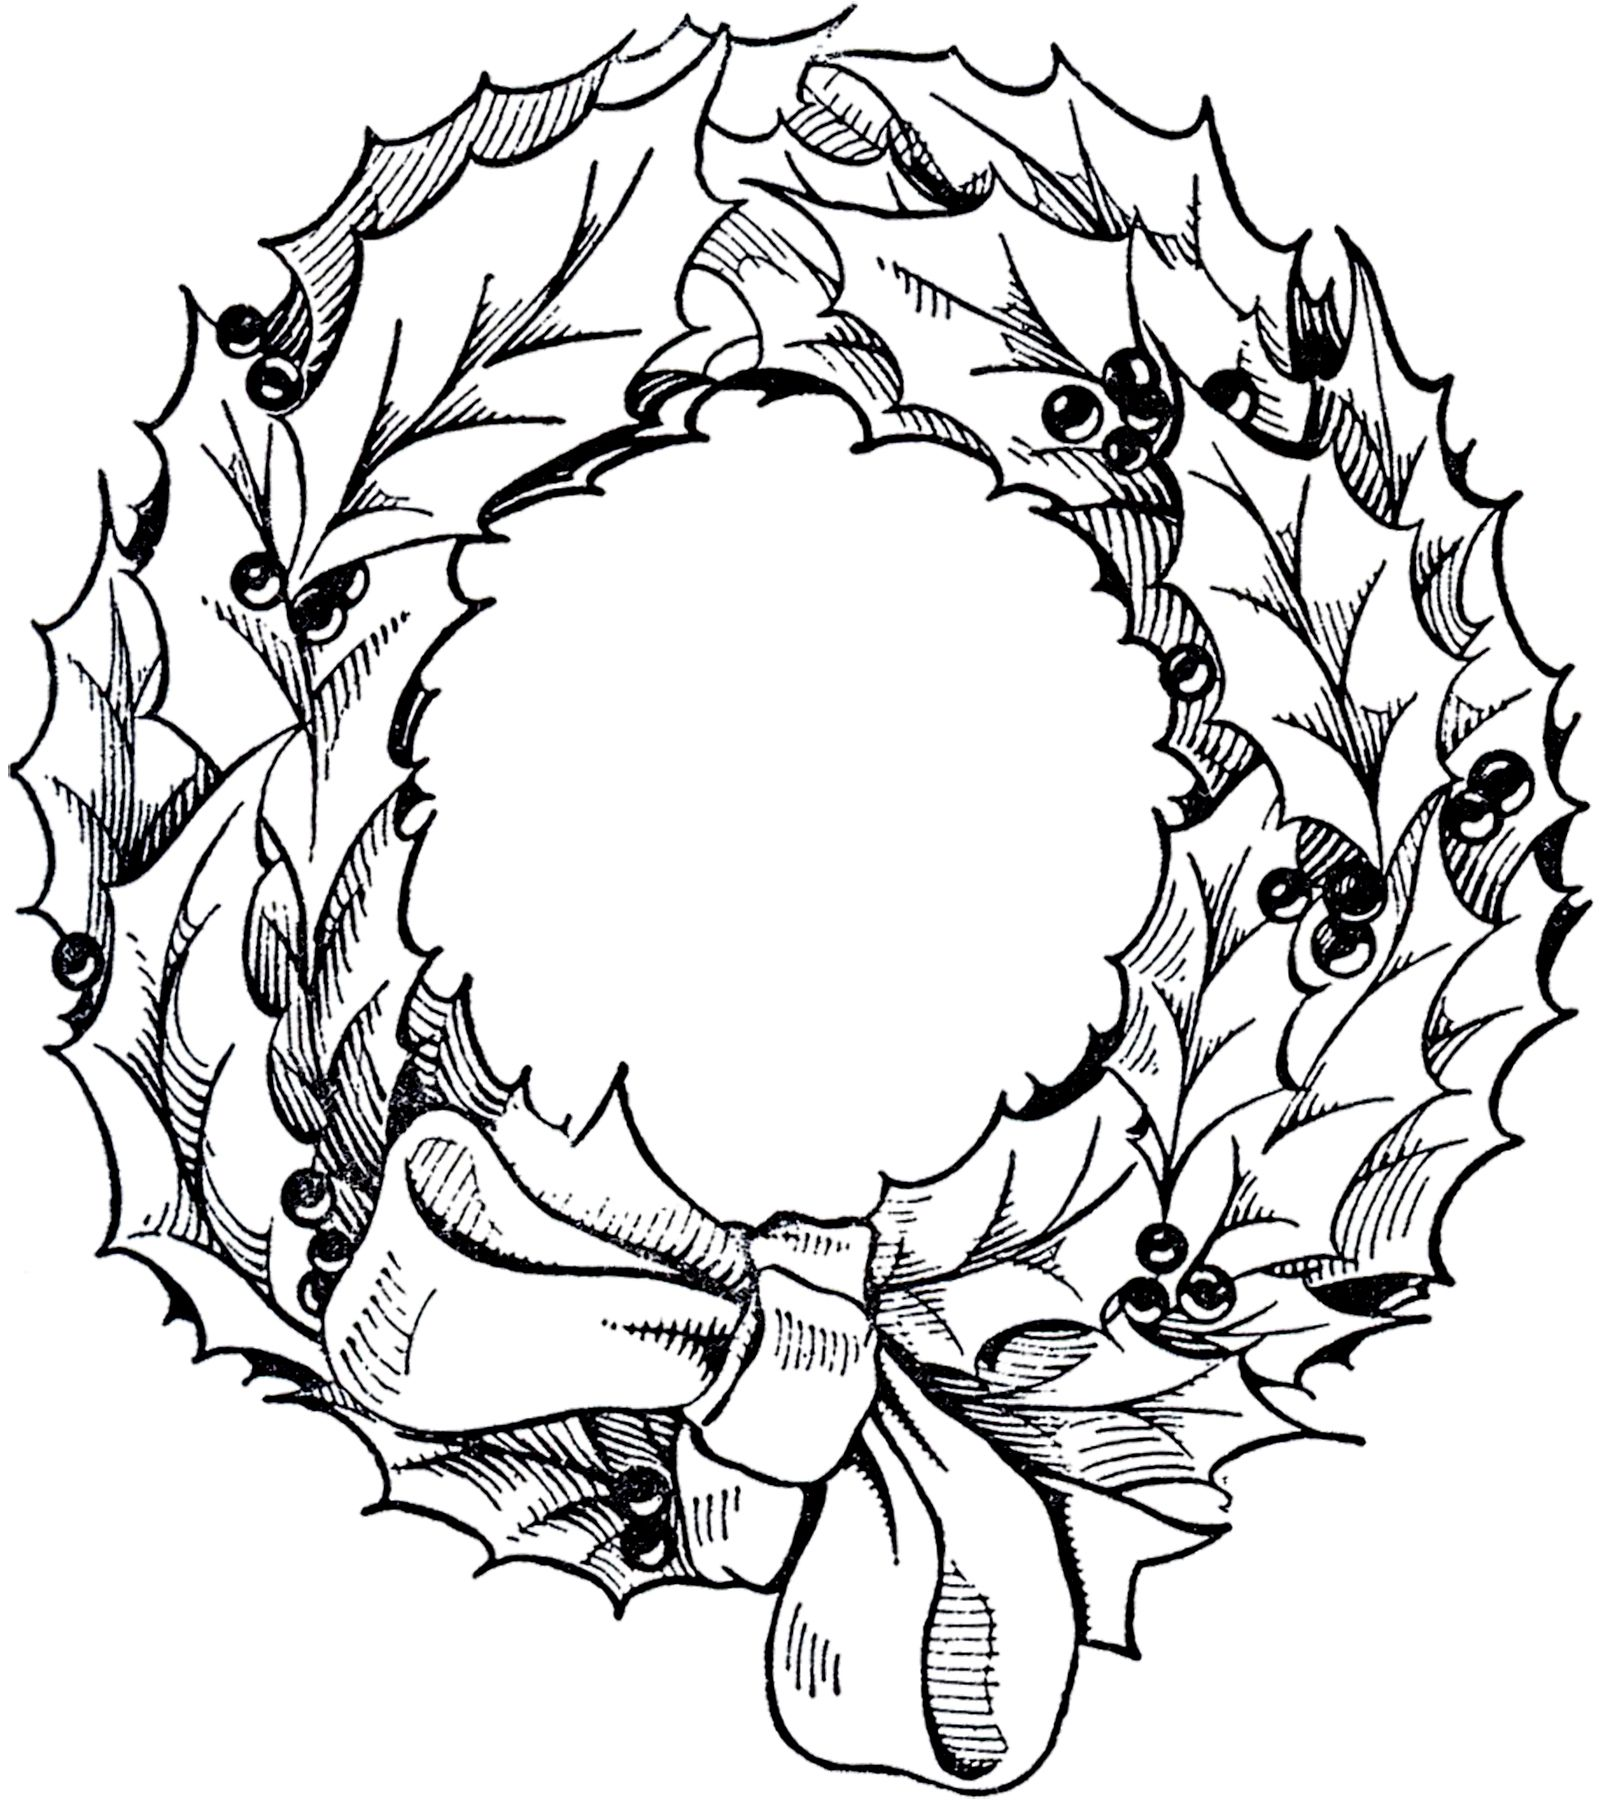 Wreath Clipart Black And White.